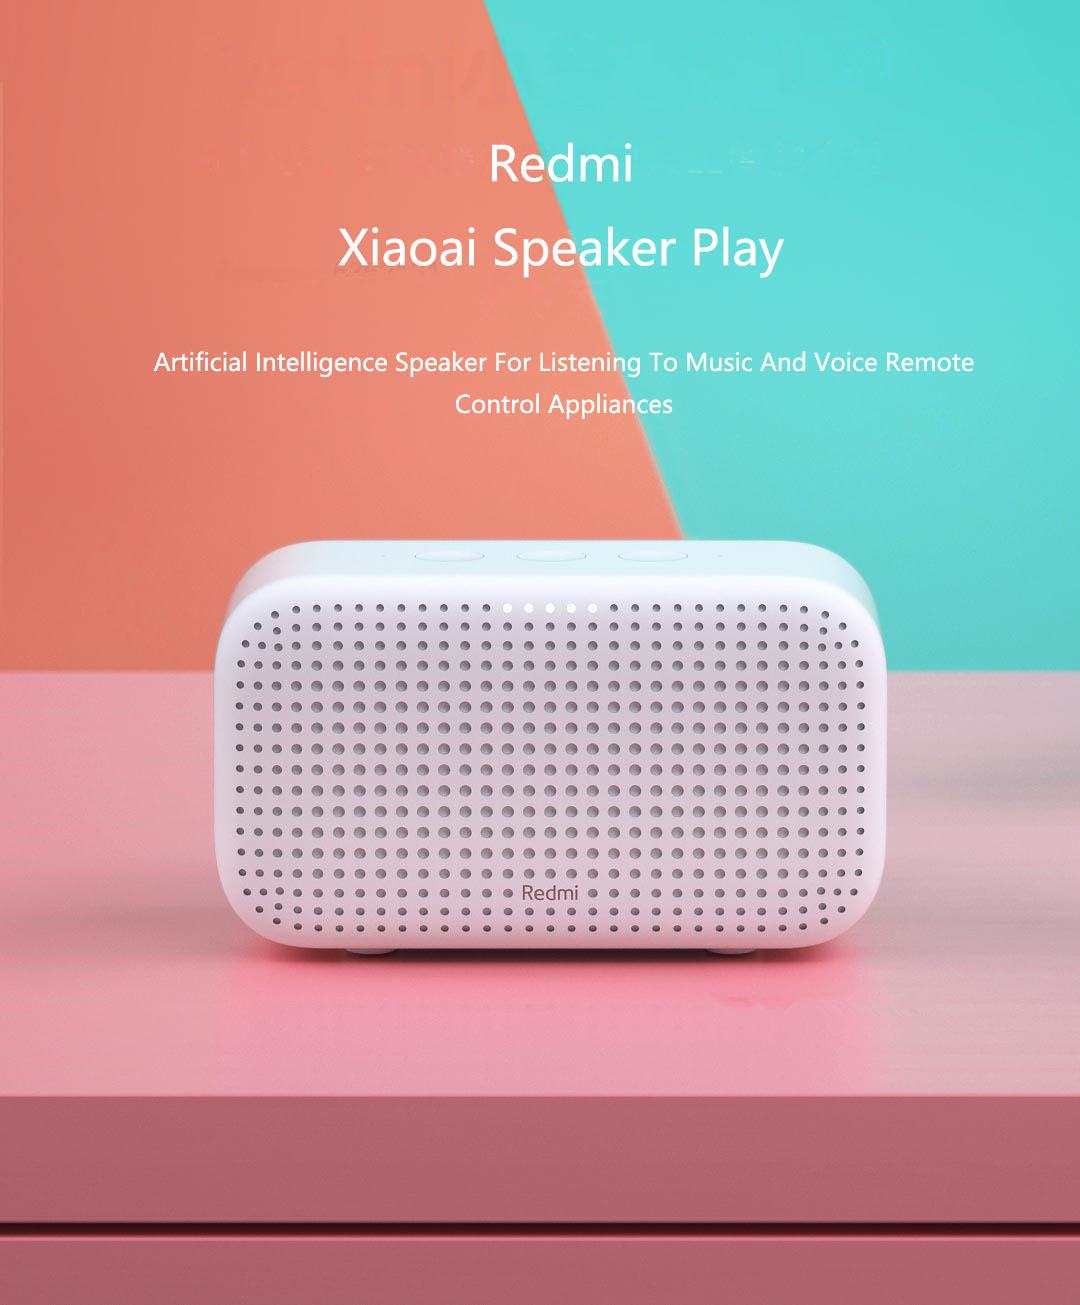 redmi speaker in india